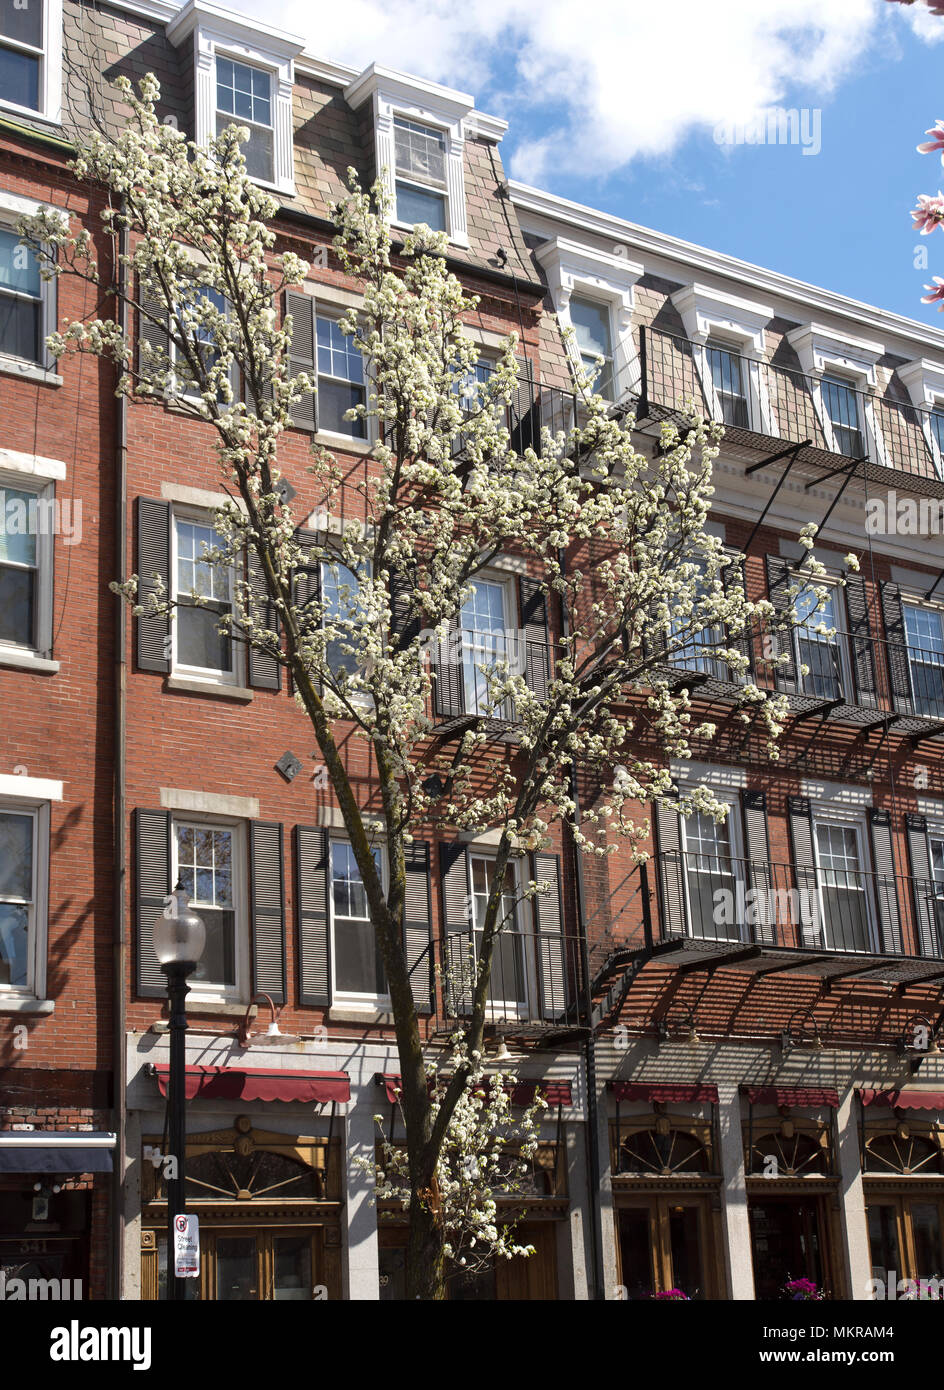 Early Spring Blooms Against Historic Architecture In The North End Of Boston Massachusetts Usa Stock Photo Alamy